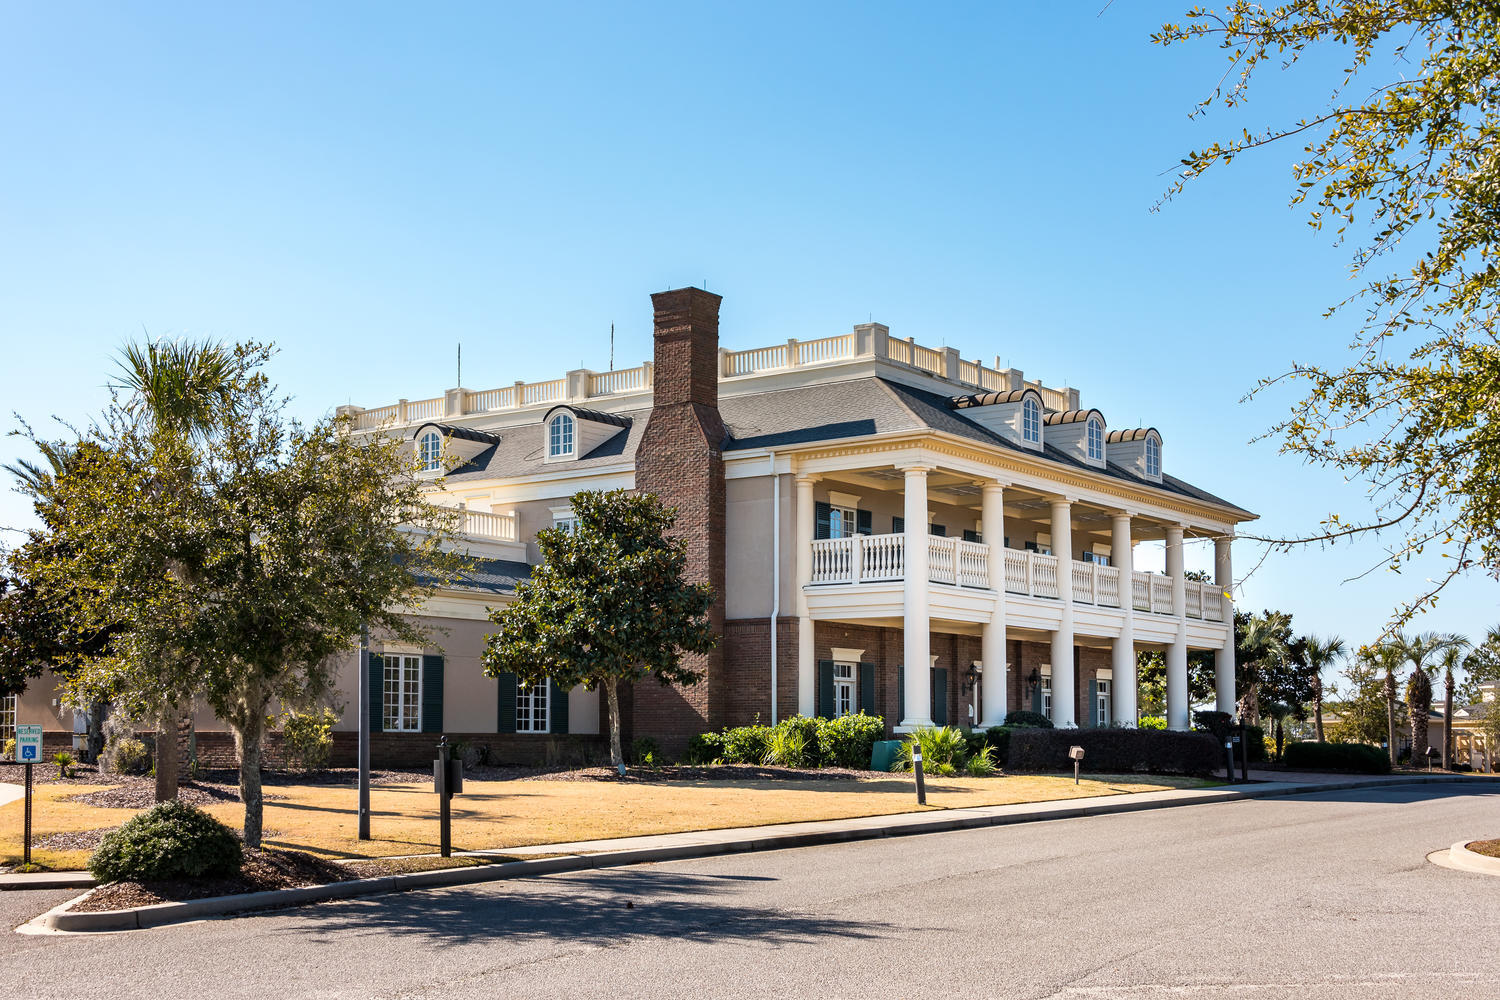 Rivertowne Country Club Homes For Sale - 1544 Rivertowne Country Club, Mount Pleasant, SC - 20